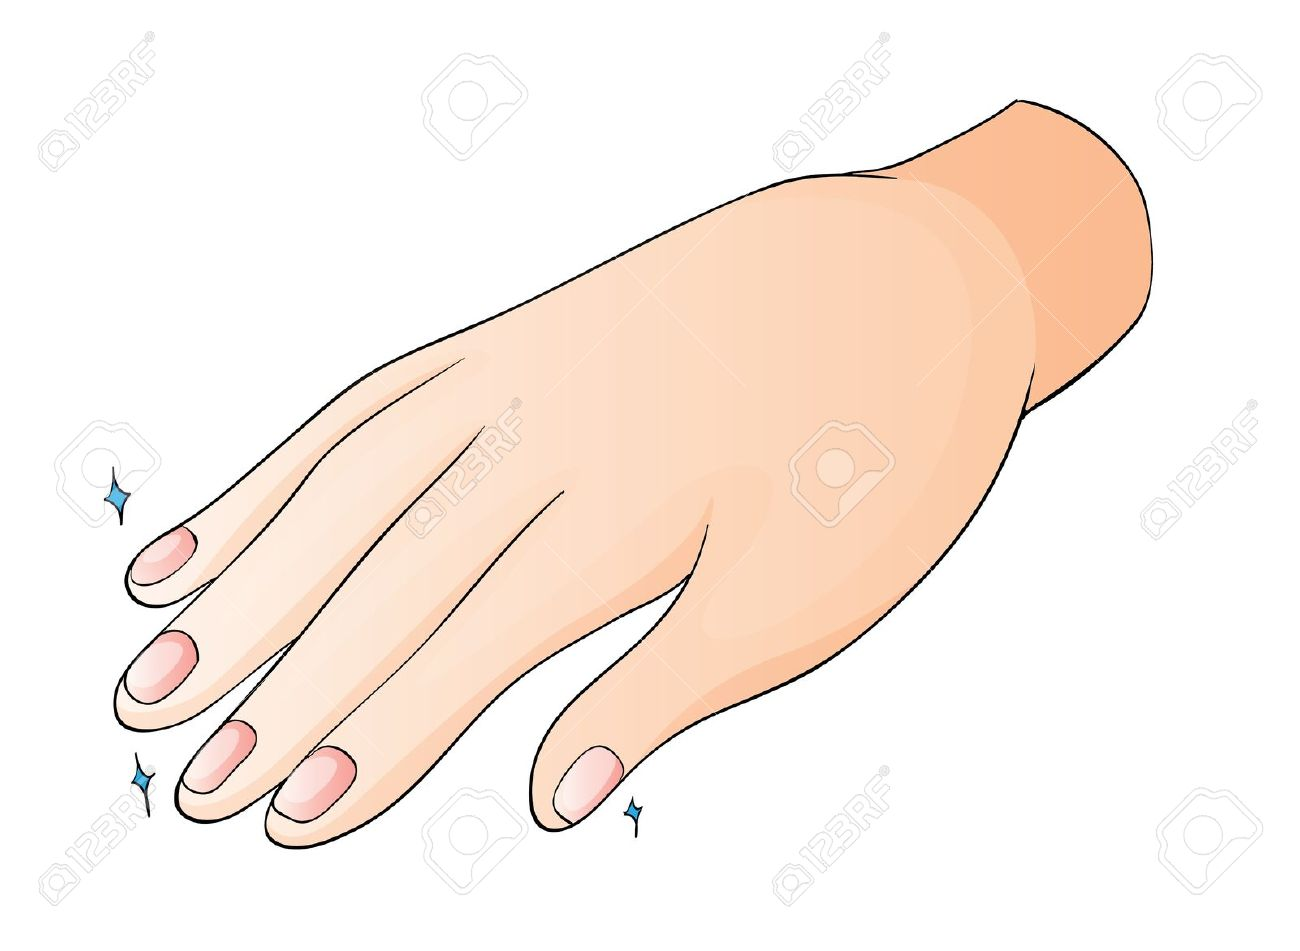 clipart for nails - photo #34